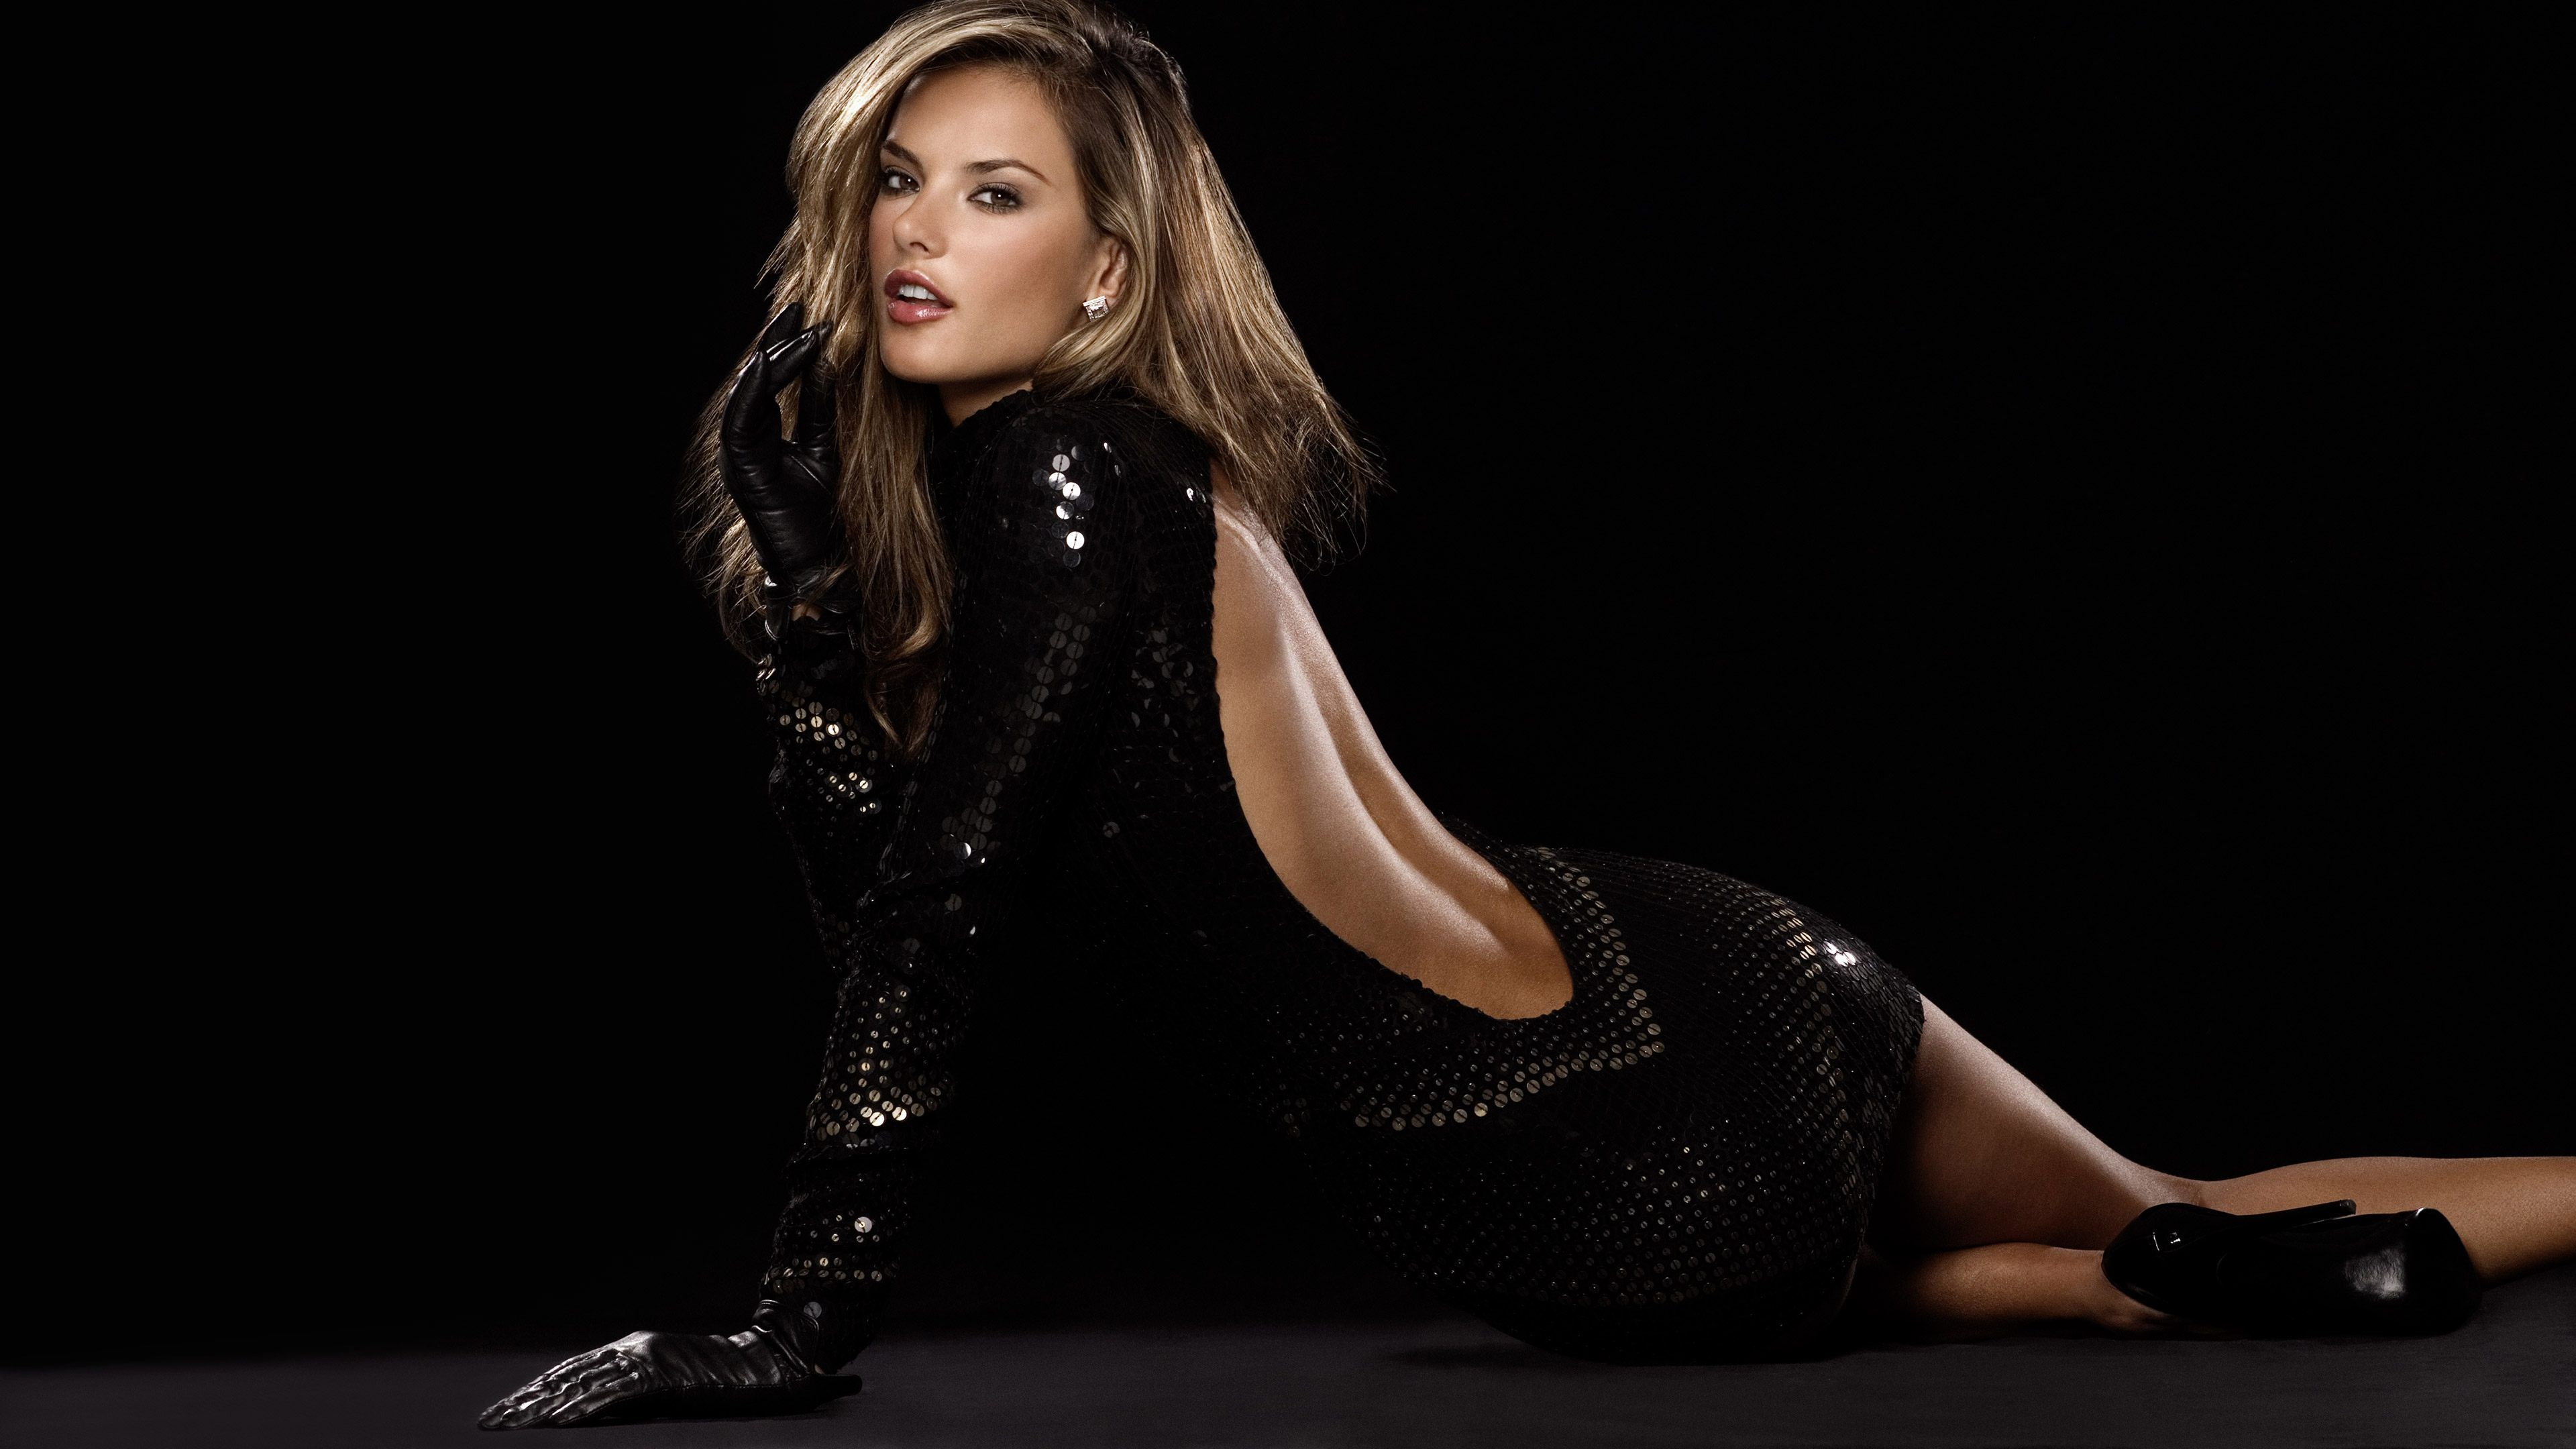 Model Y Hd: Alessandra Ambrosio Ultra HD 4K Wallpaper Of Brazilian